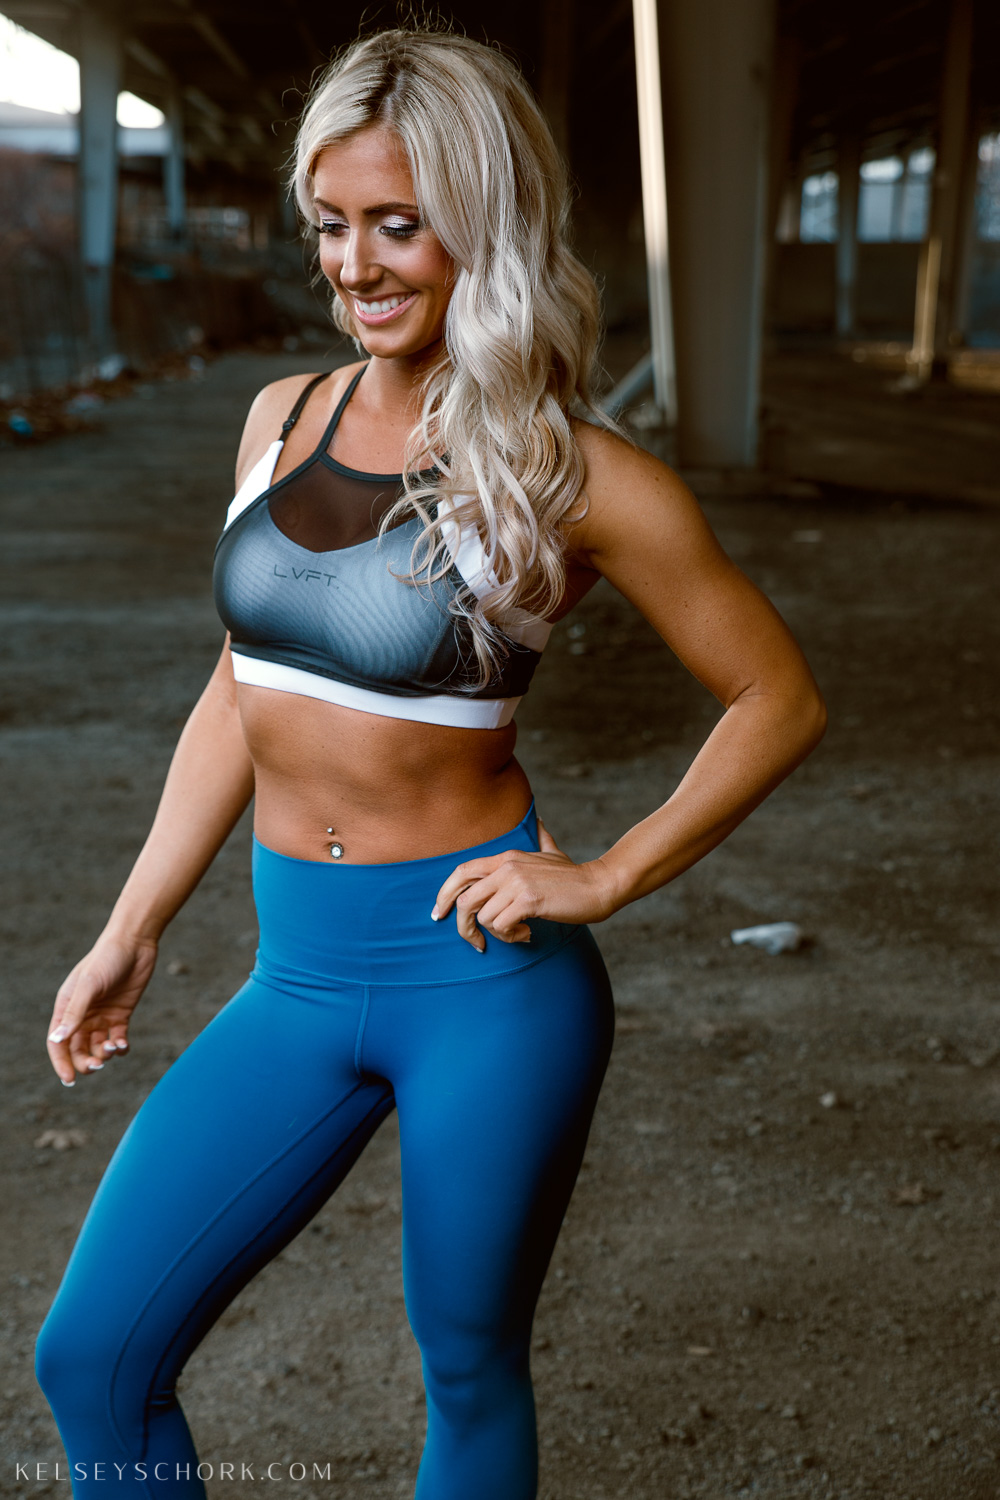 Erin_fitness_photoshoot-12.jpg